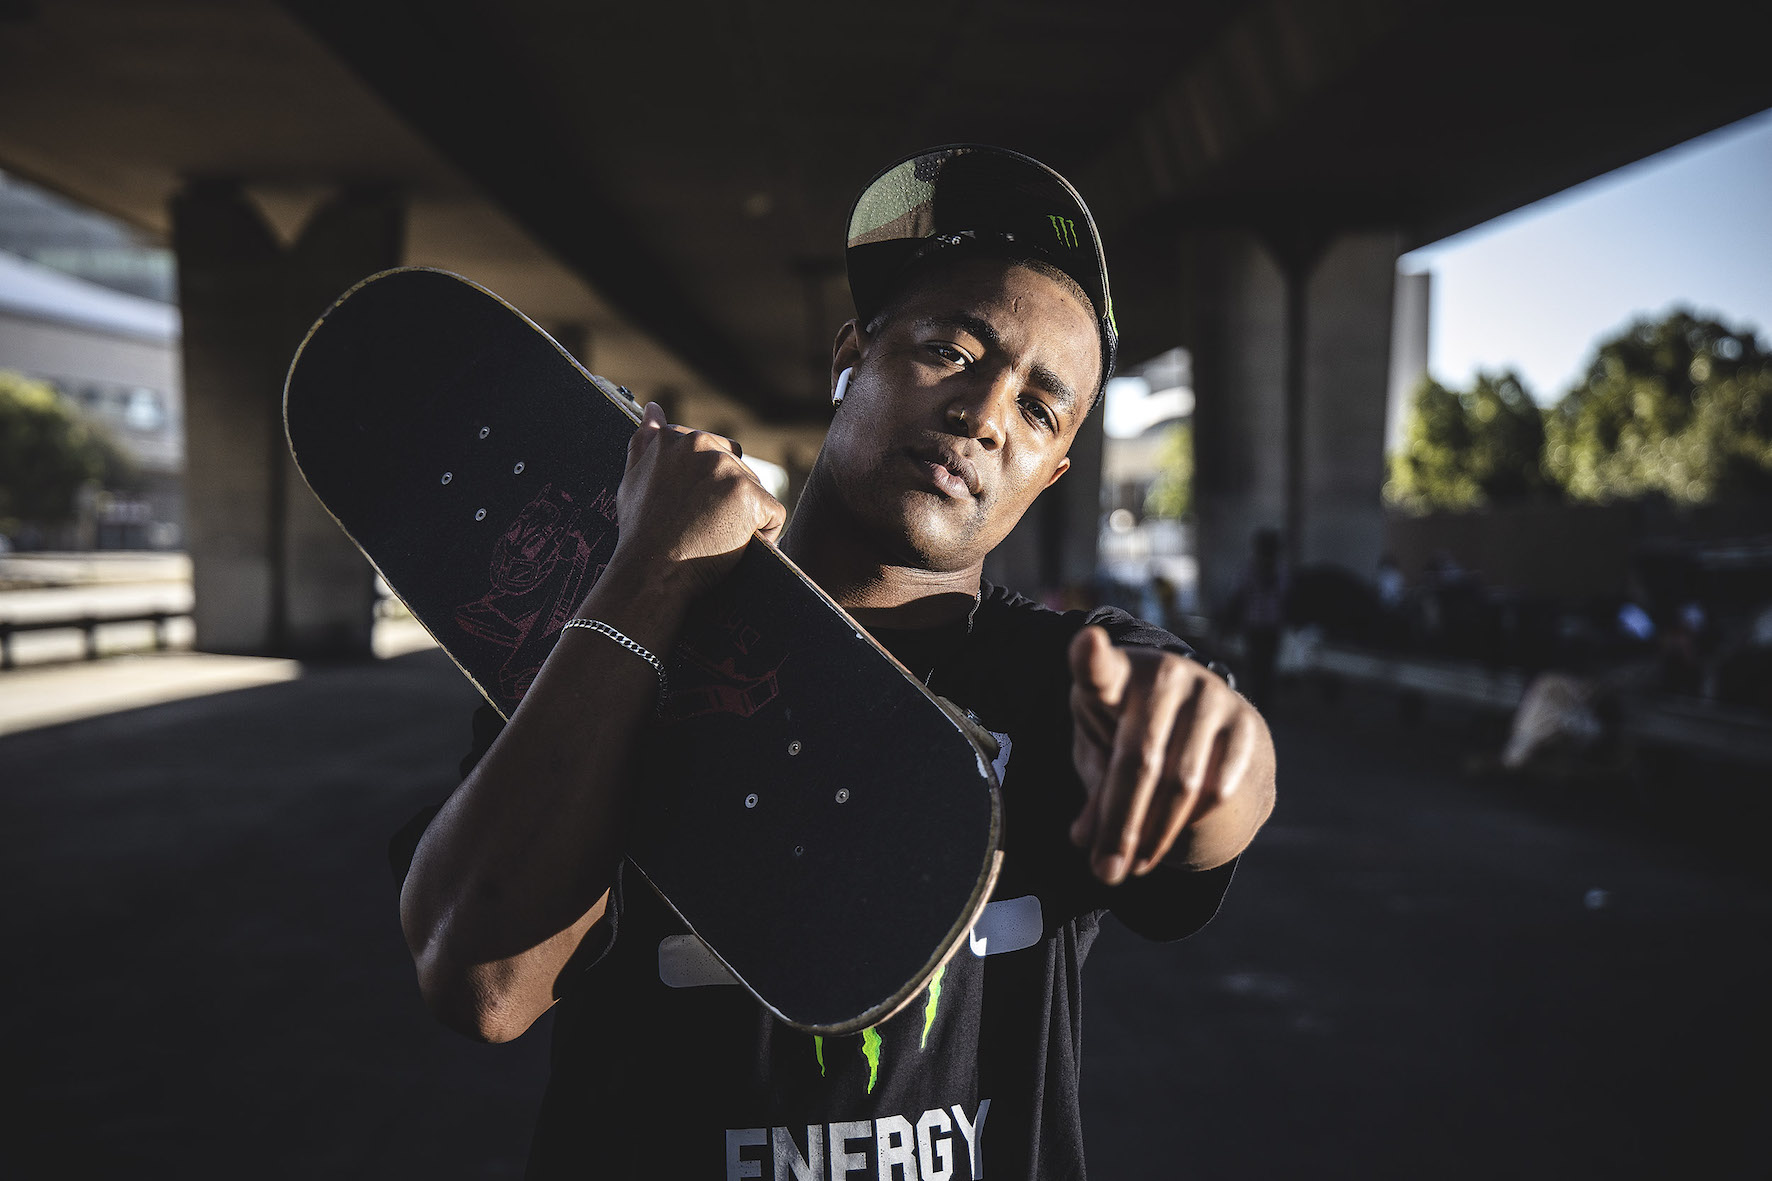 Interview with DJ Speedsta about joining Monster Energy